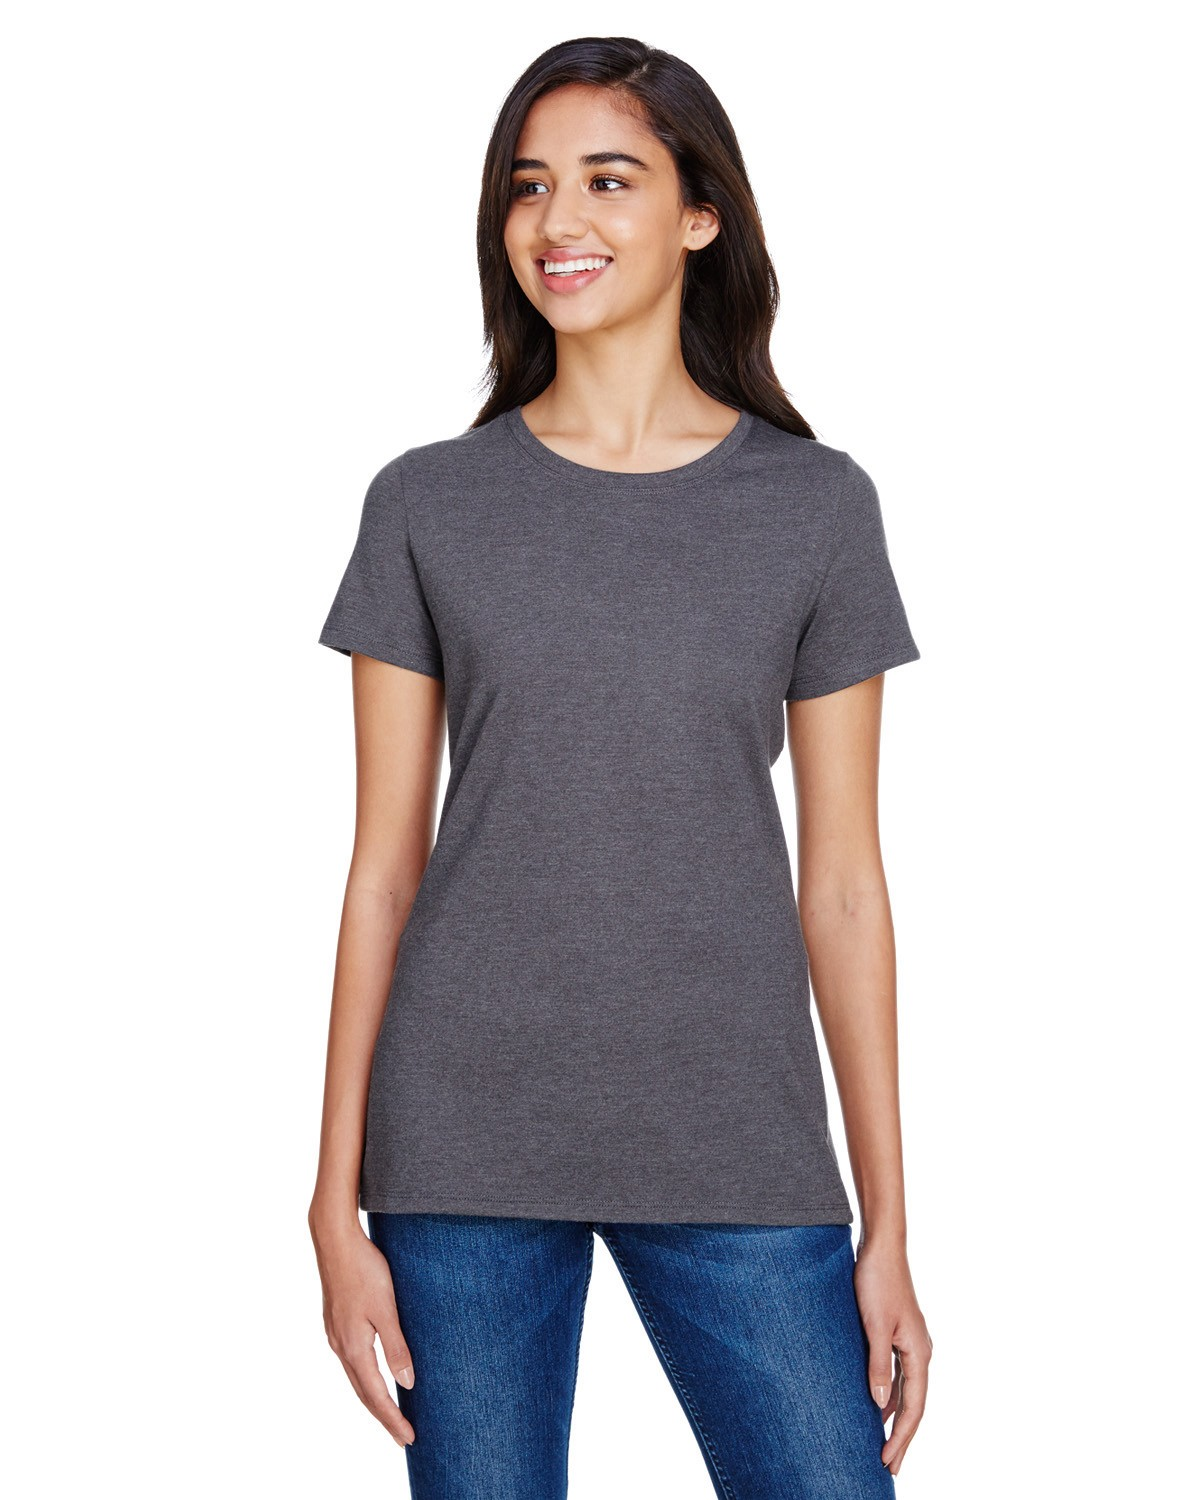 CP20 Champion CHARCOAL HEATHER